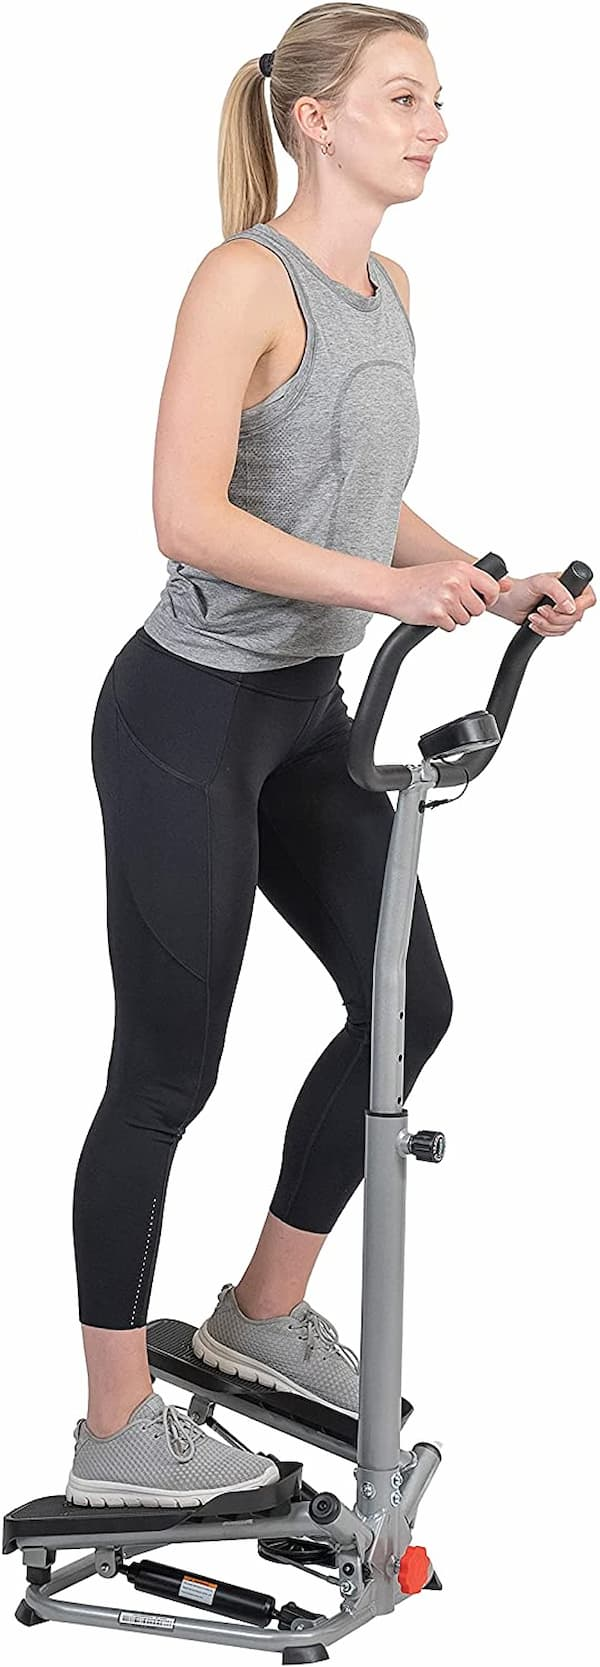 9. Sunny Health & Fitness Twist Stepper